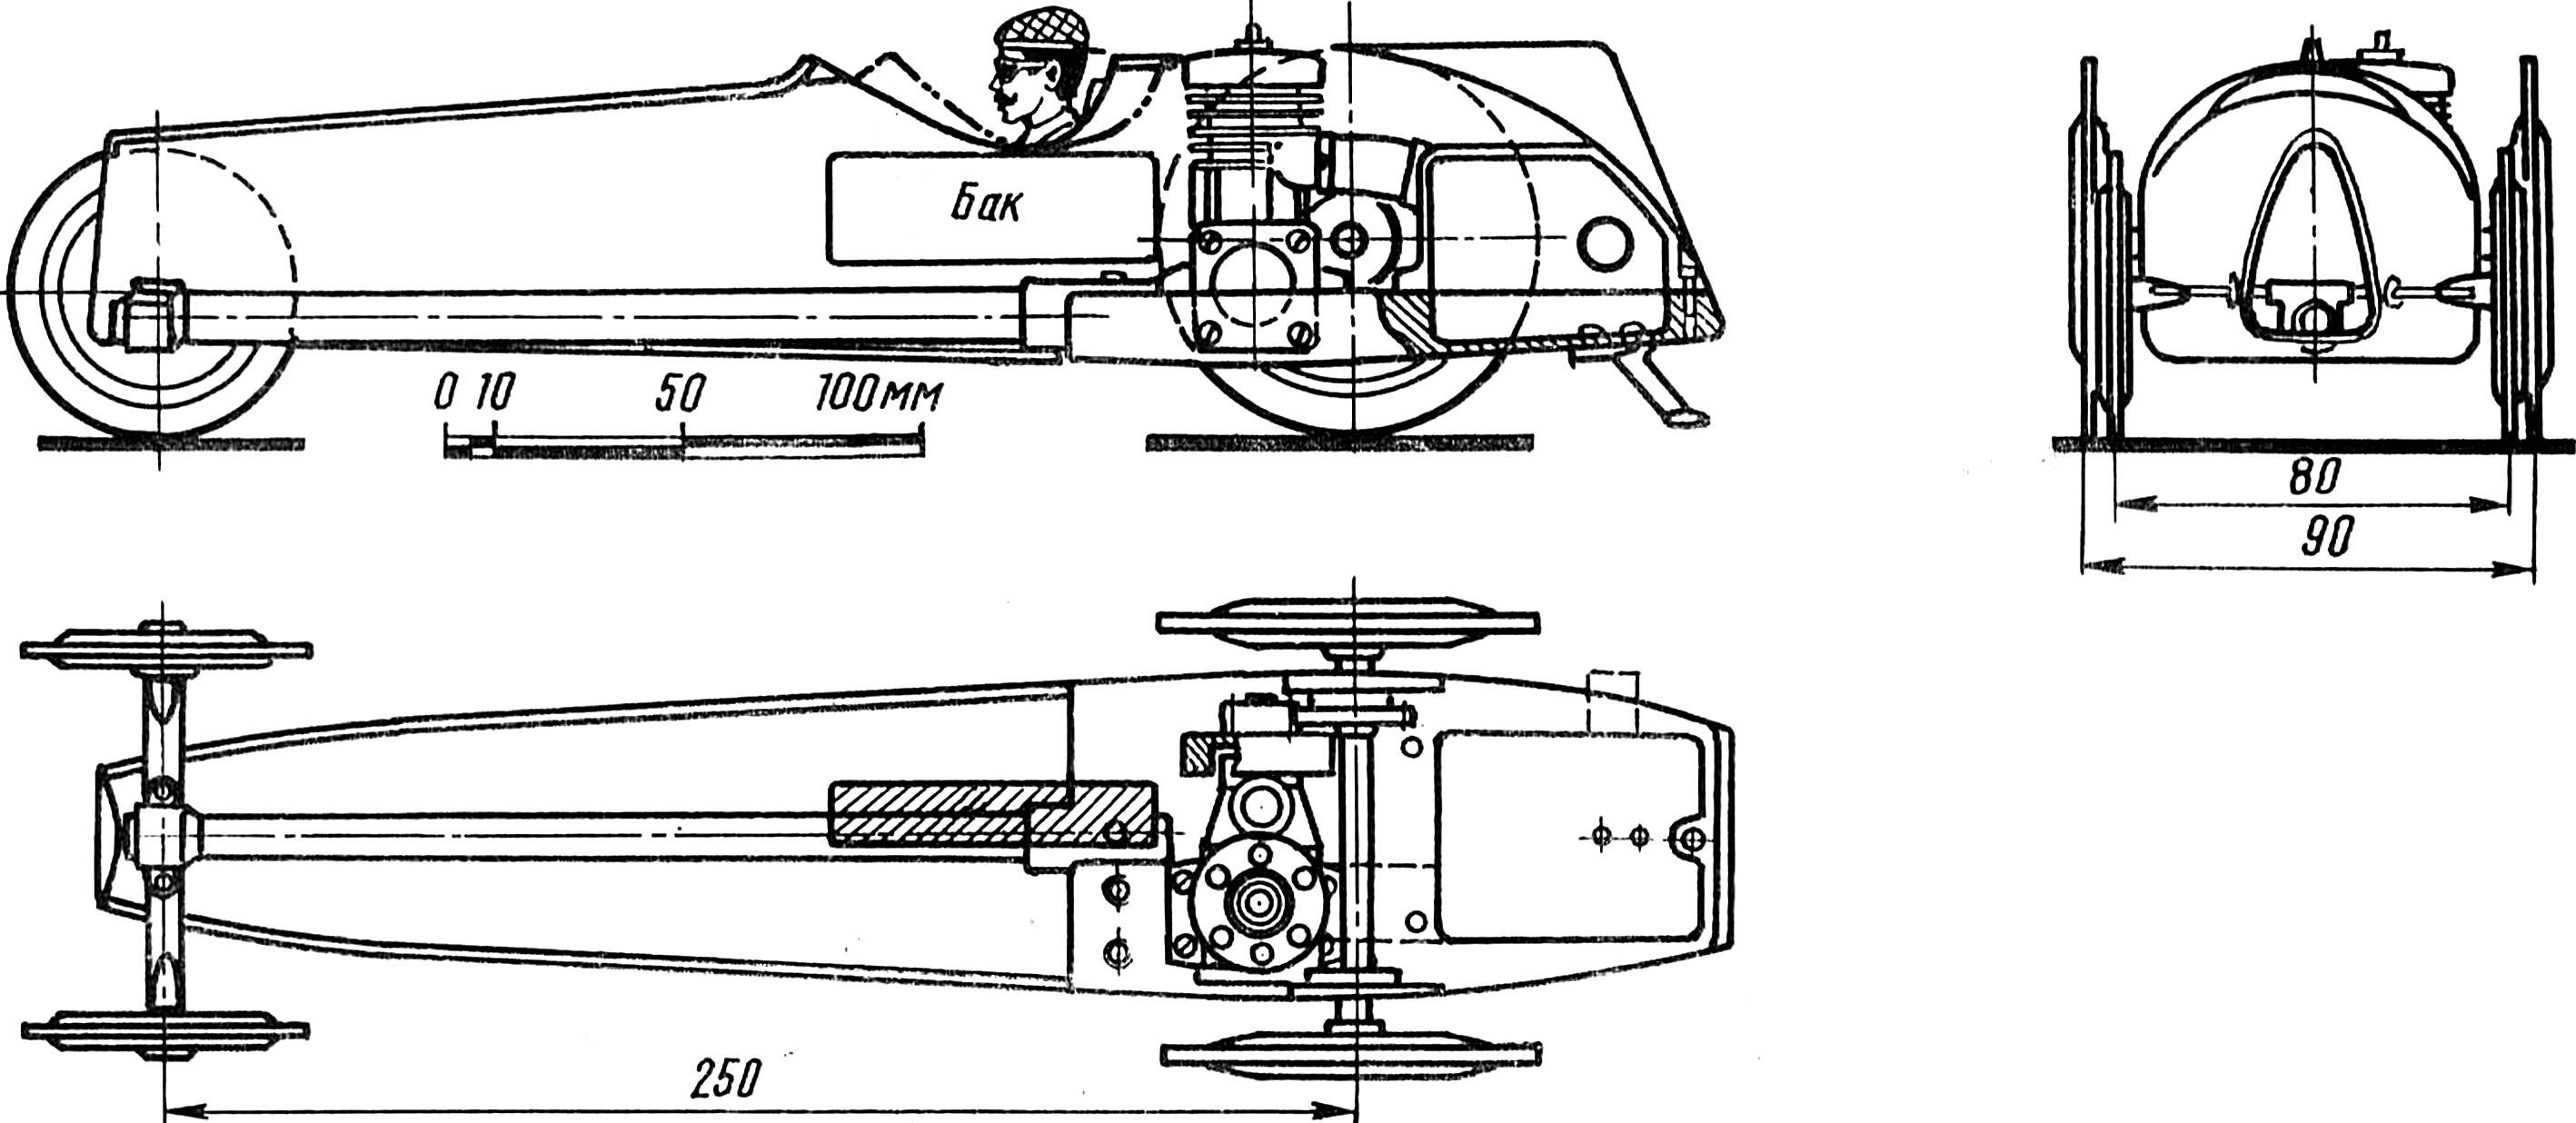 Fig. 3. Model class E-5 in the first stage of the design process.